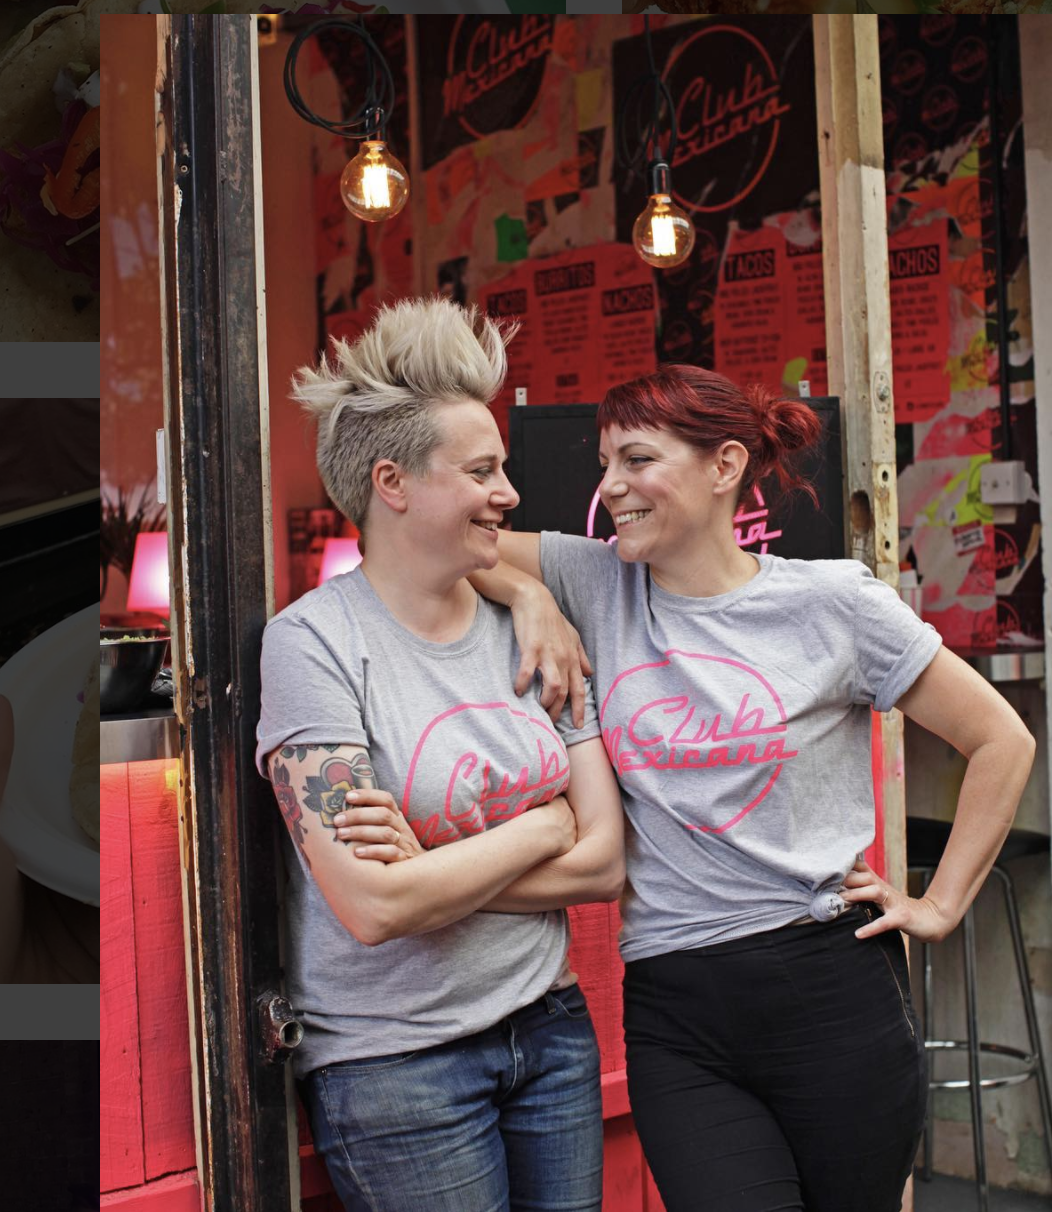 Meriel Armitage and Lois Davidson, vegan power couple of Club Mexicana